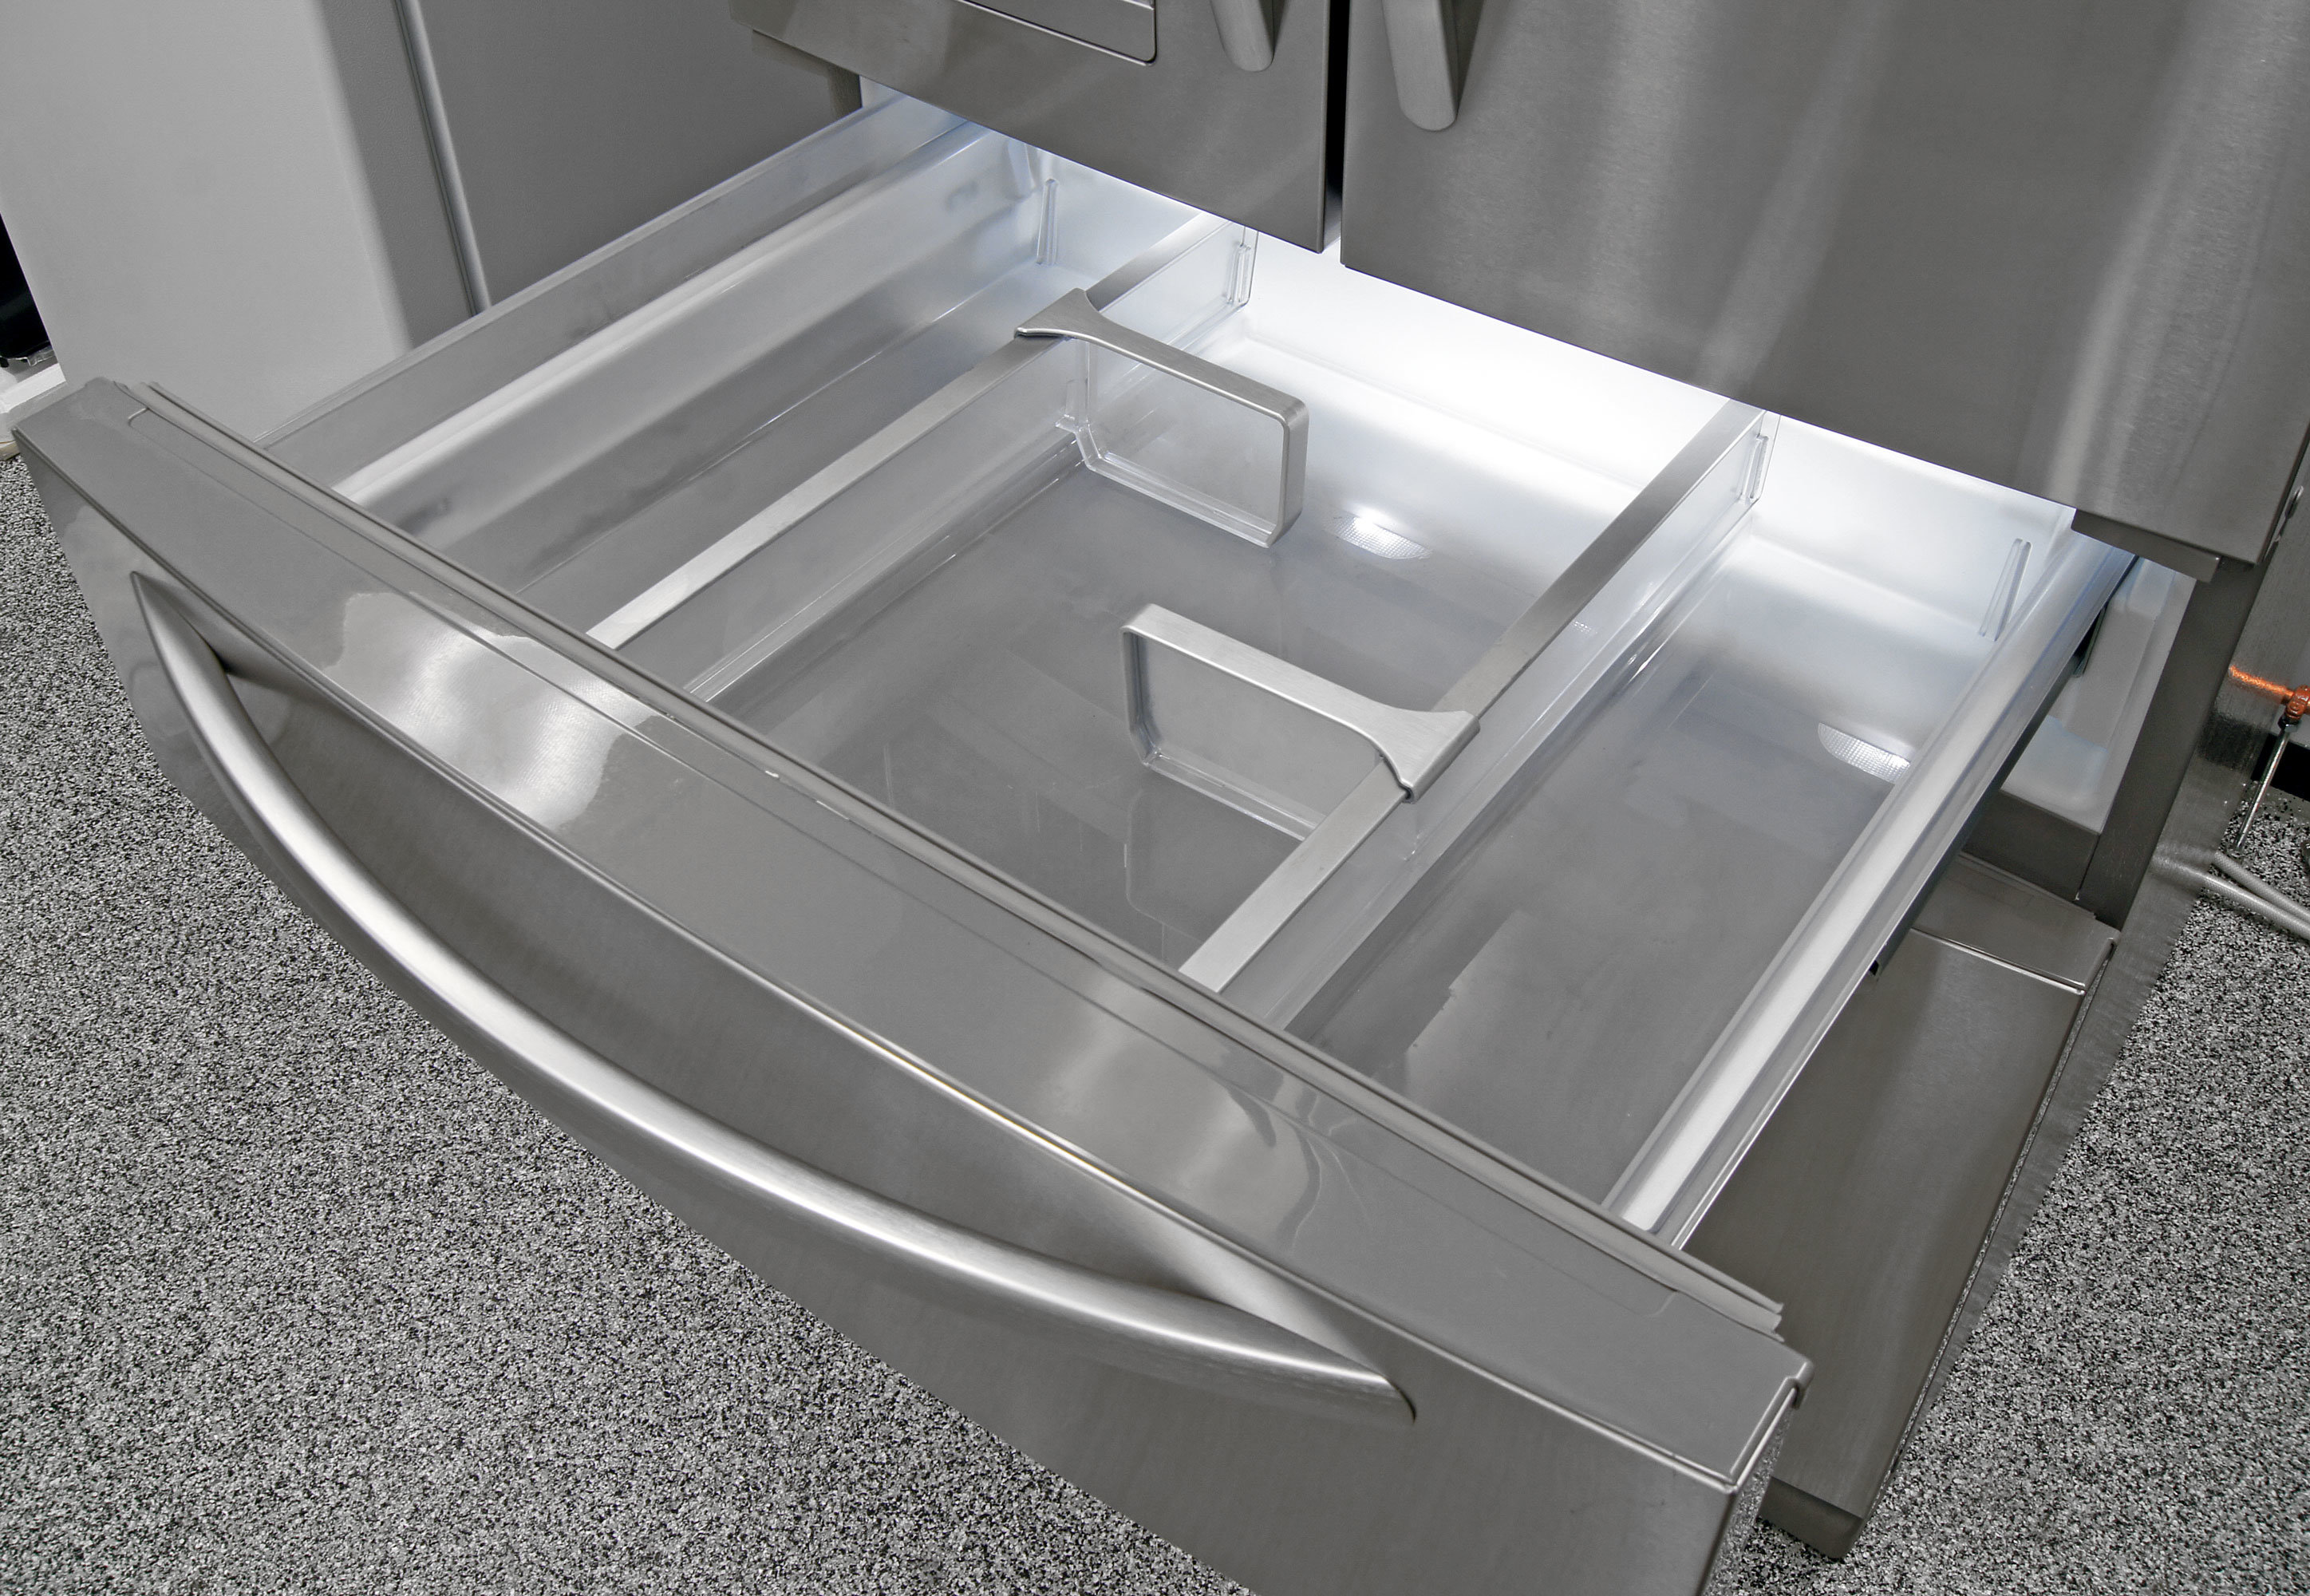 Depending on your preference, the KitchenAid KFXS25RYMS's central drawer can be used as a big deli bin or a large crisper.